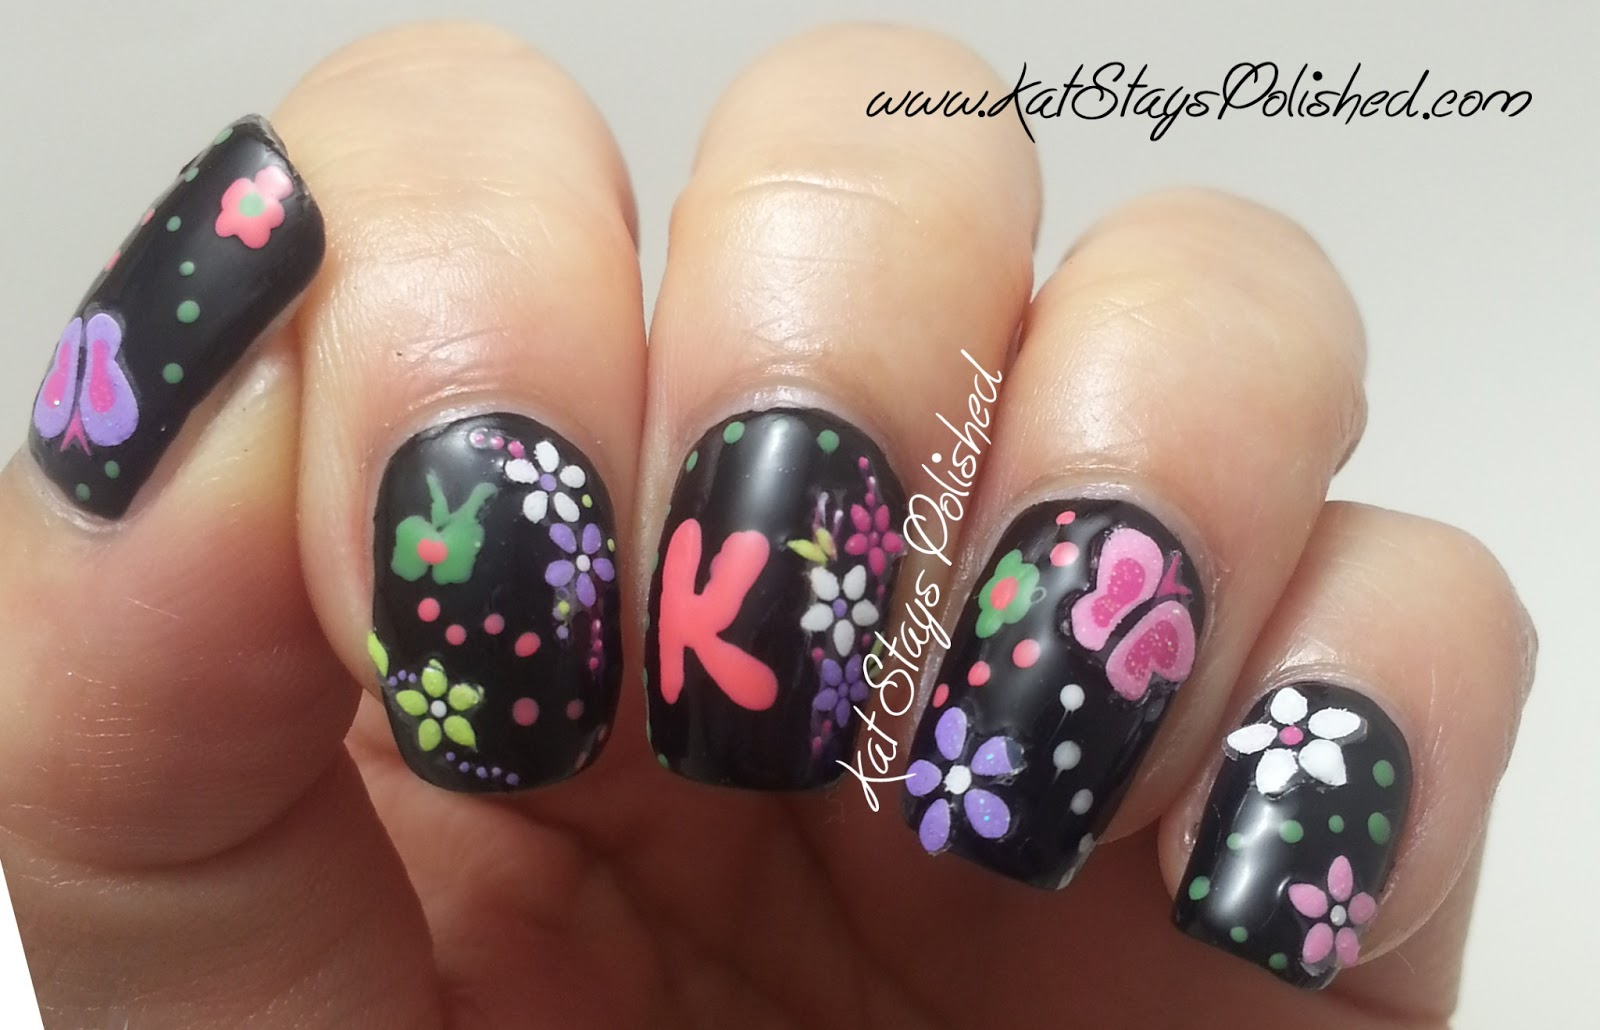 Kat Stays Polished | Beauty Blog with a Dash of Life: Joby Nail Art ...